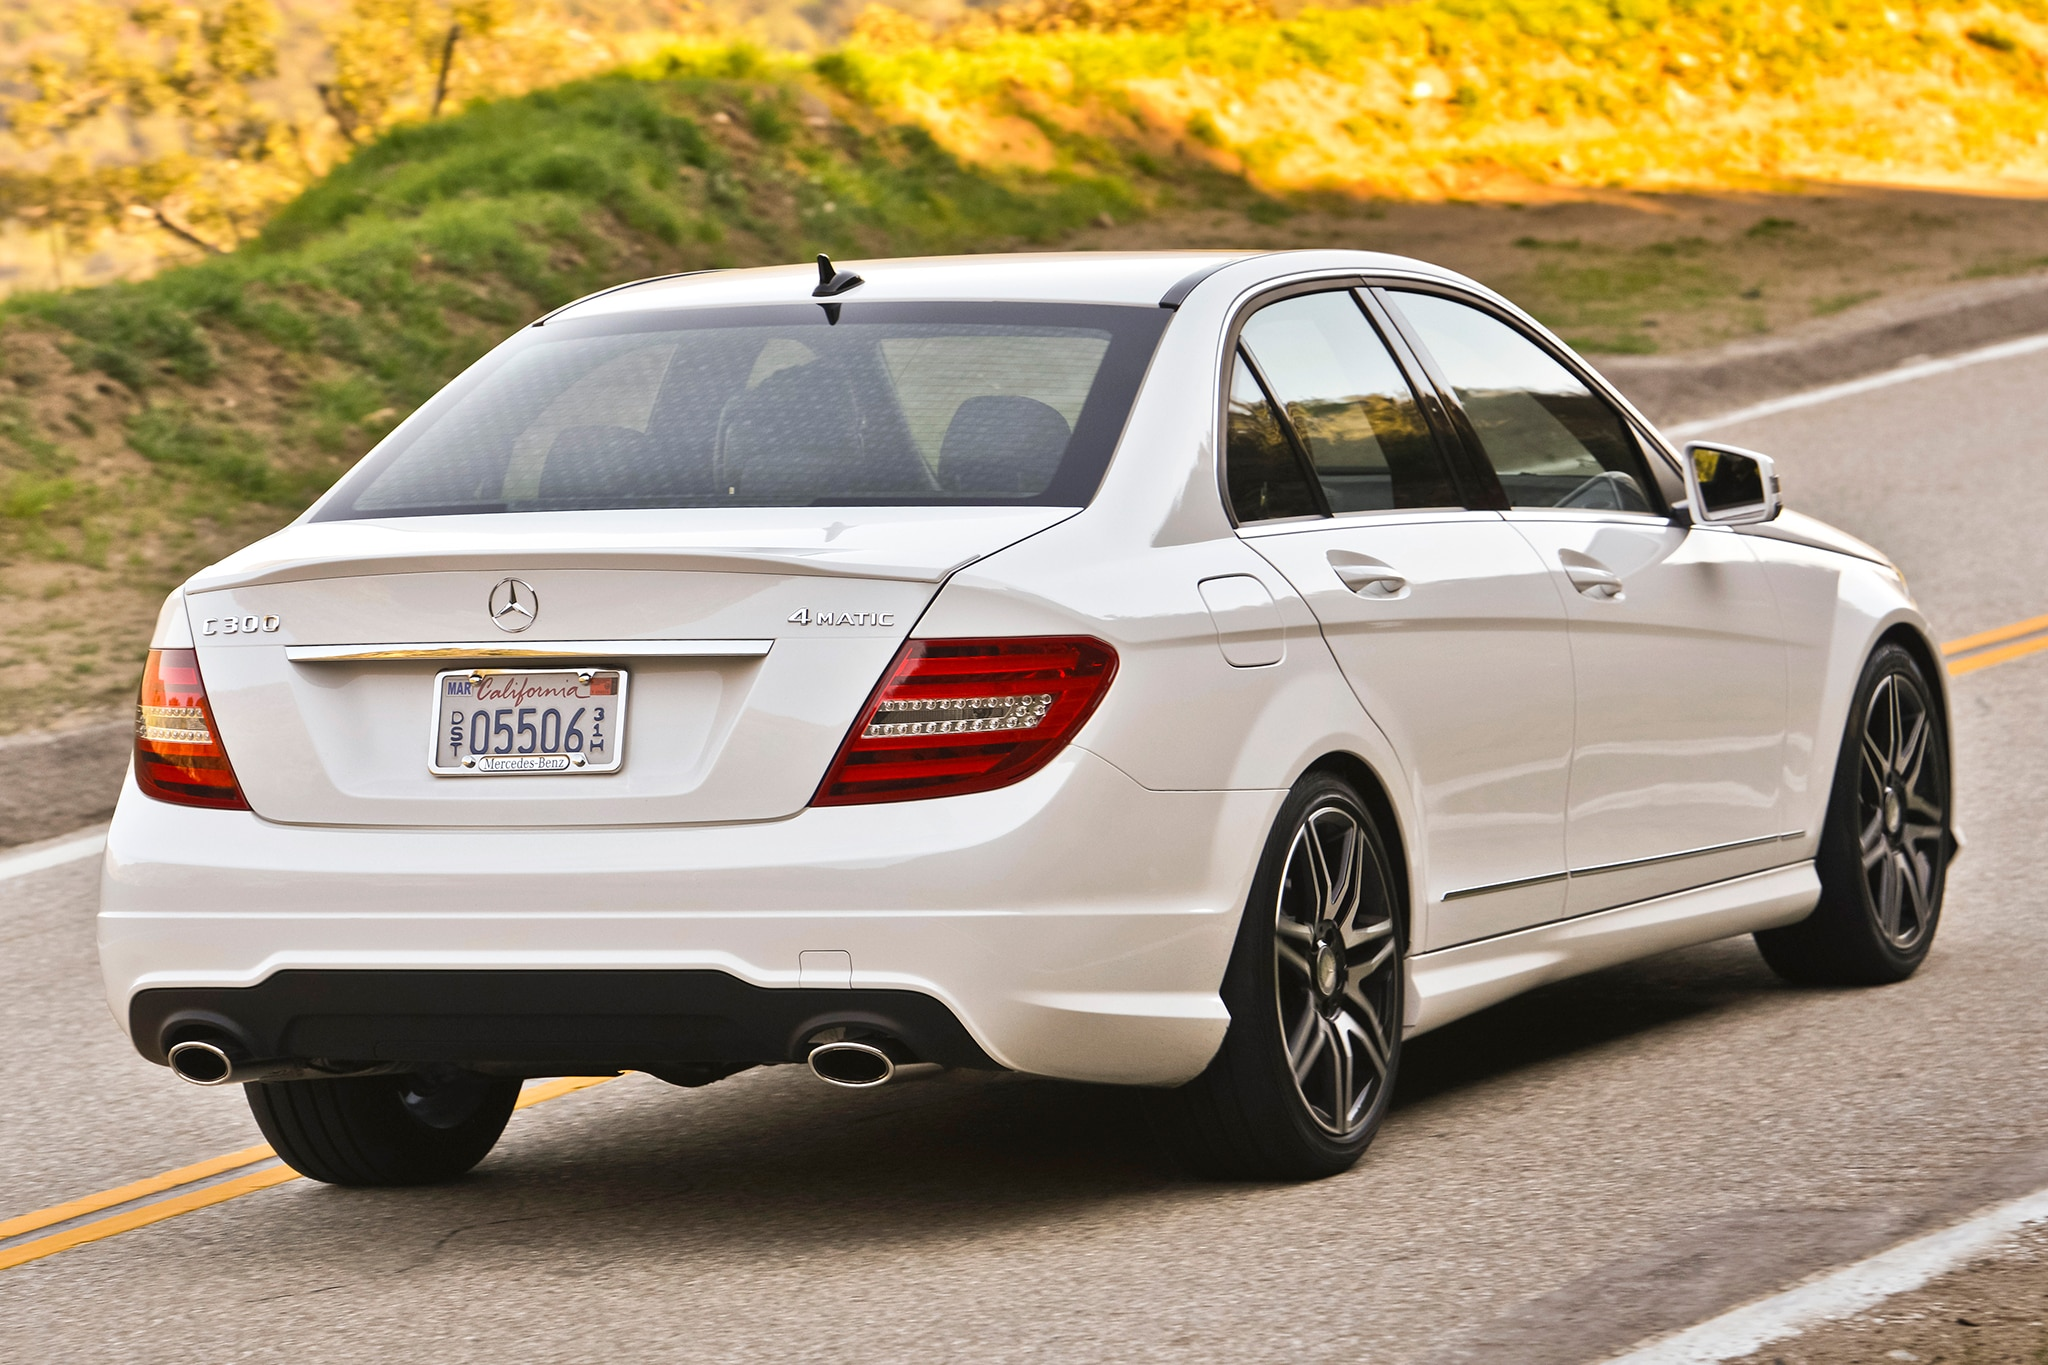 The affected 2013 and 2014 mercedes benz c300